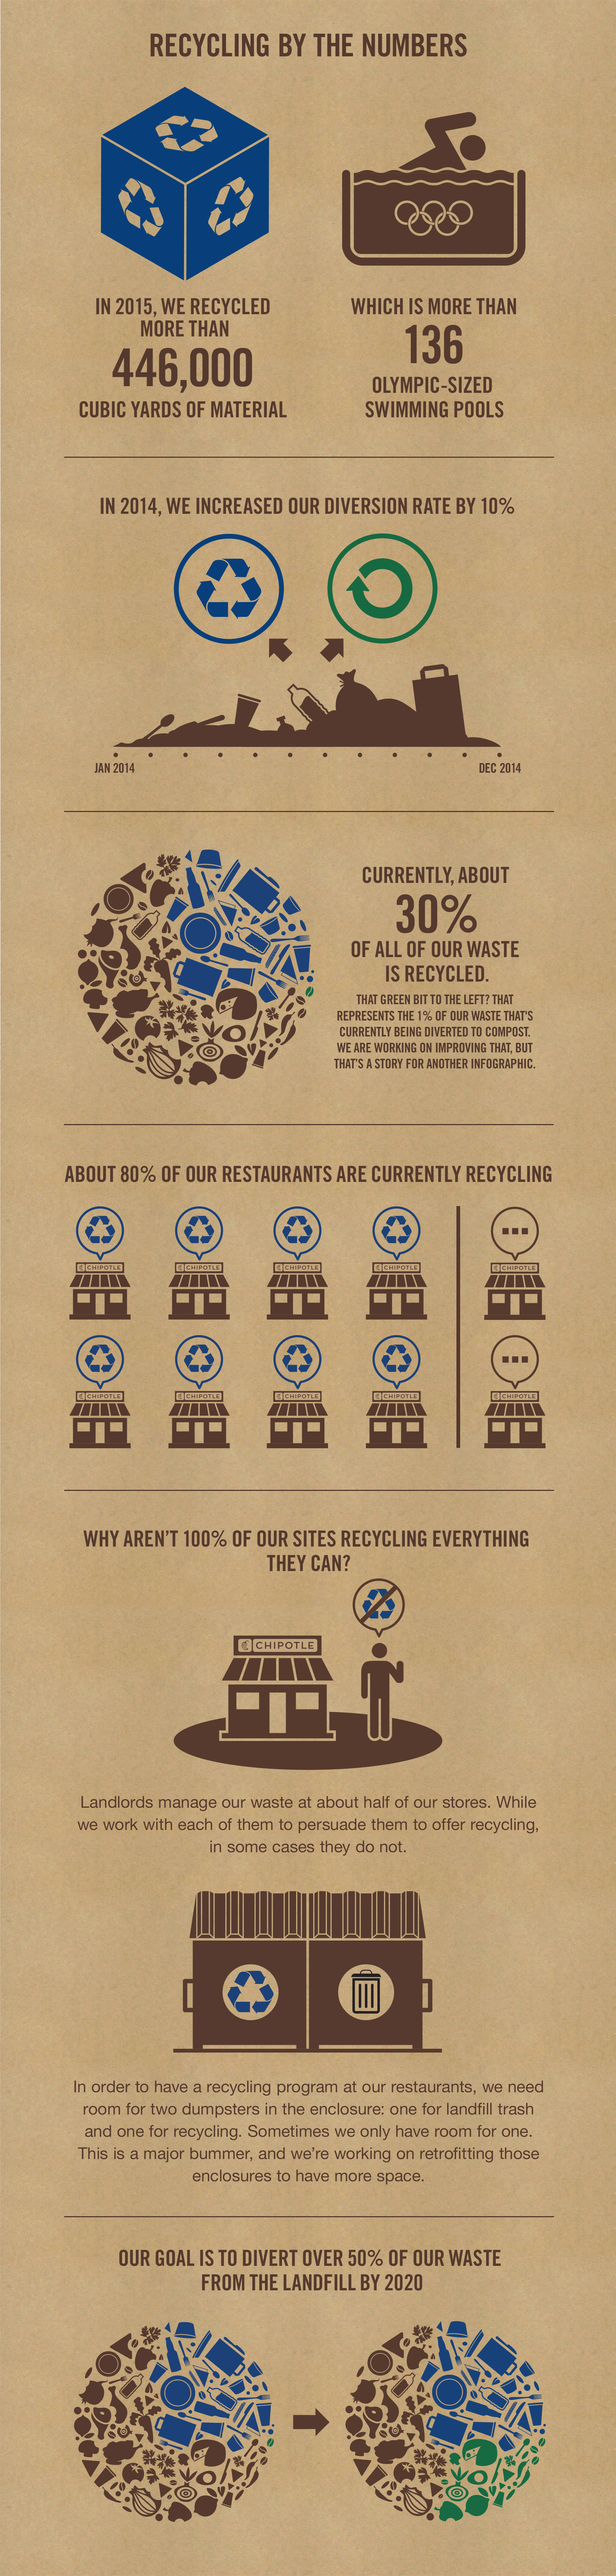 Chipotle — Recycling